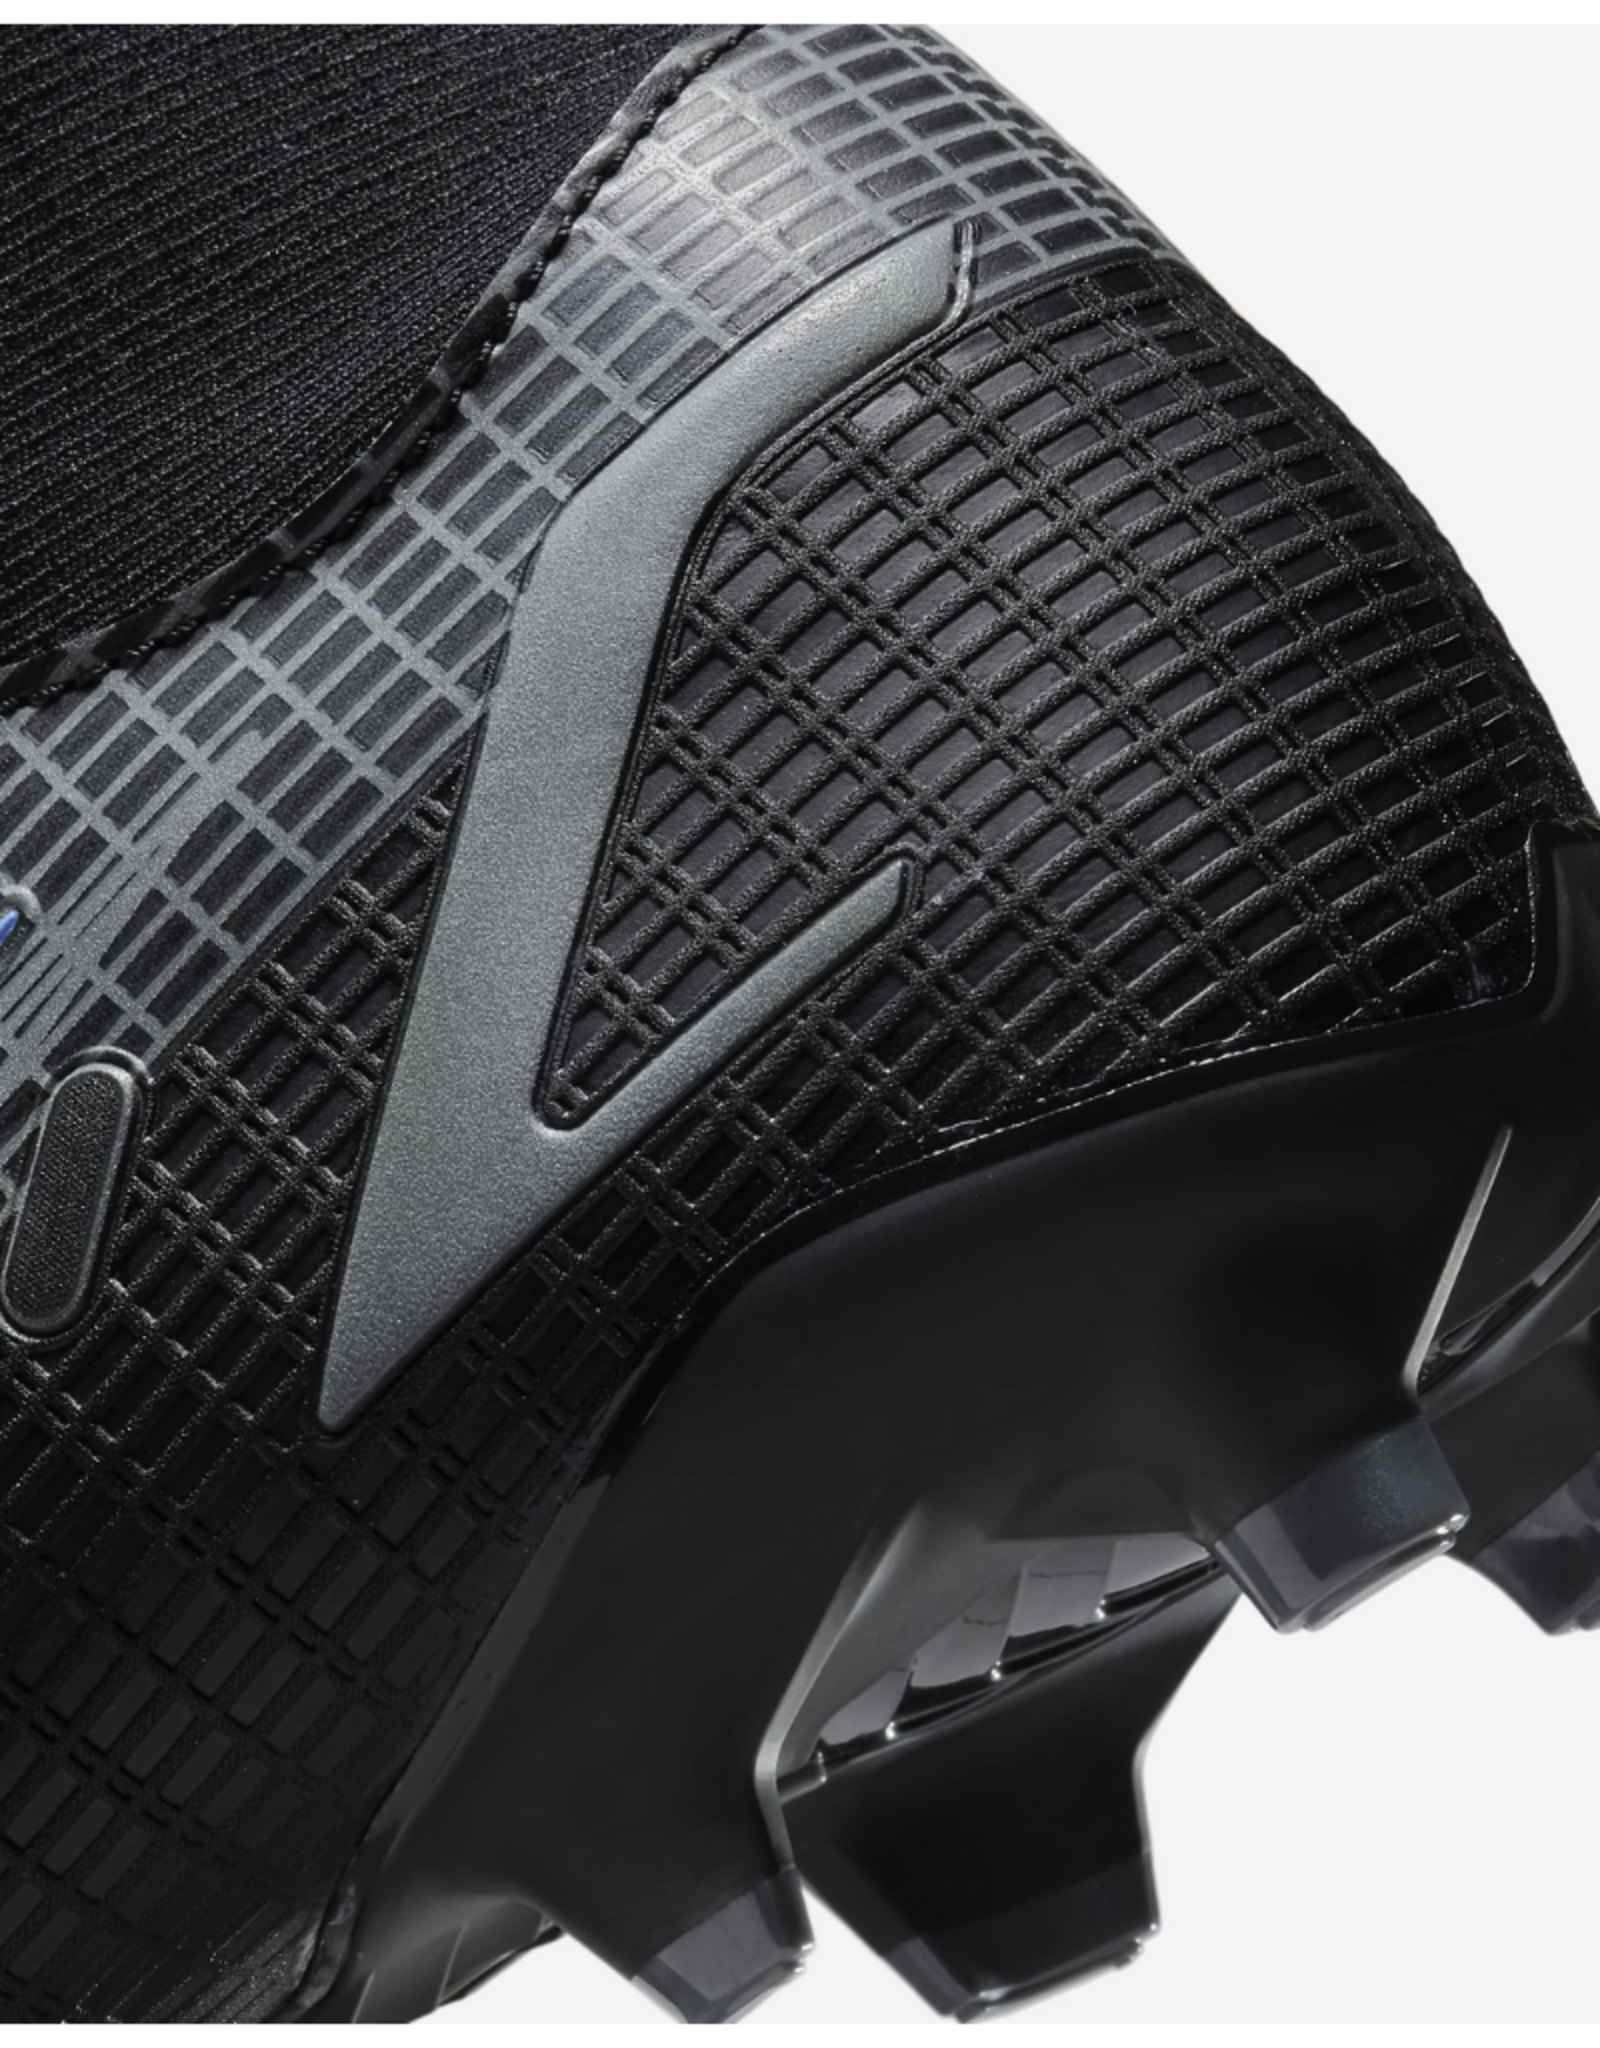 Nike Mercurial Superfly 8 Academy Multi-Ground Soccer Cleat